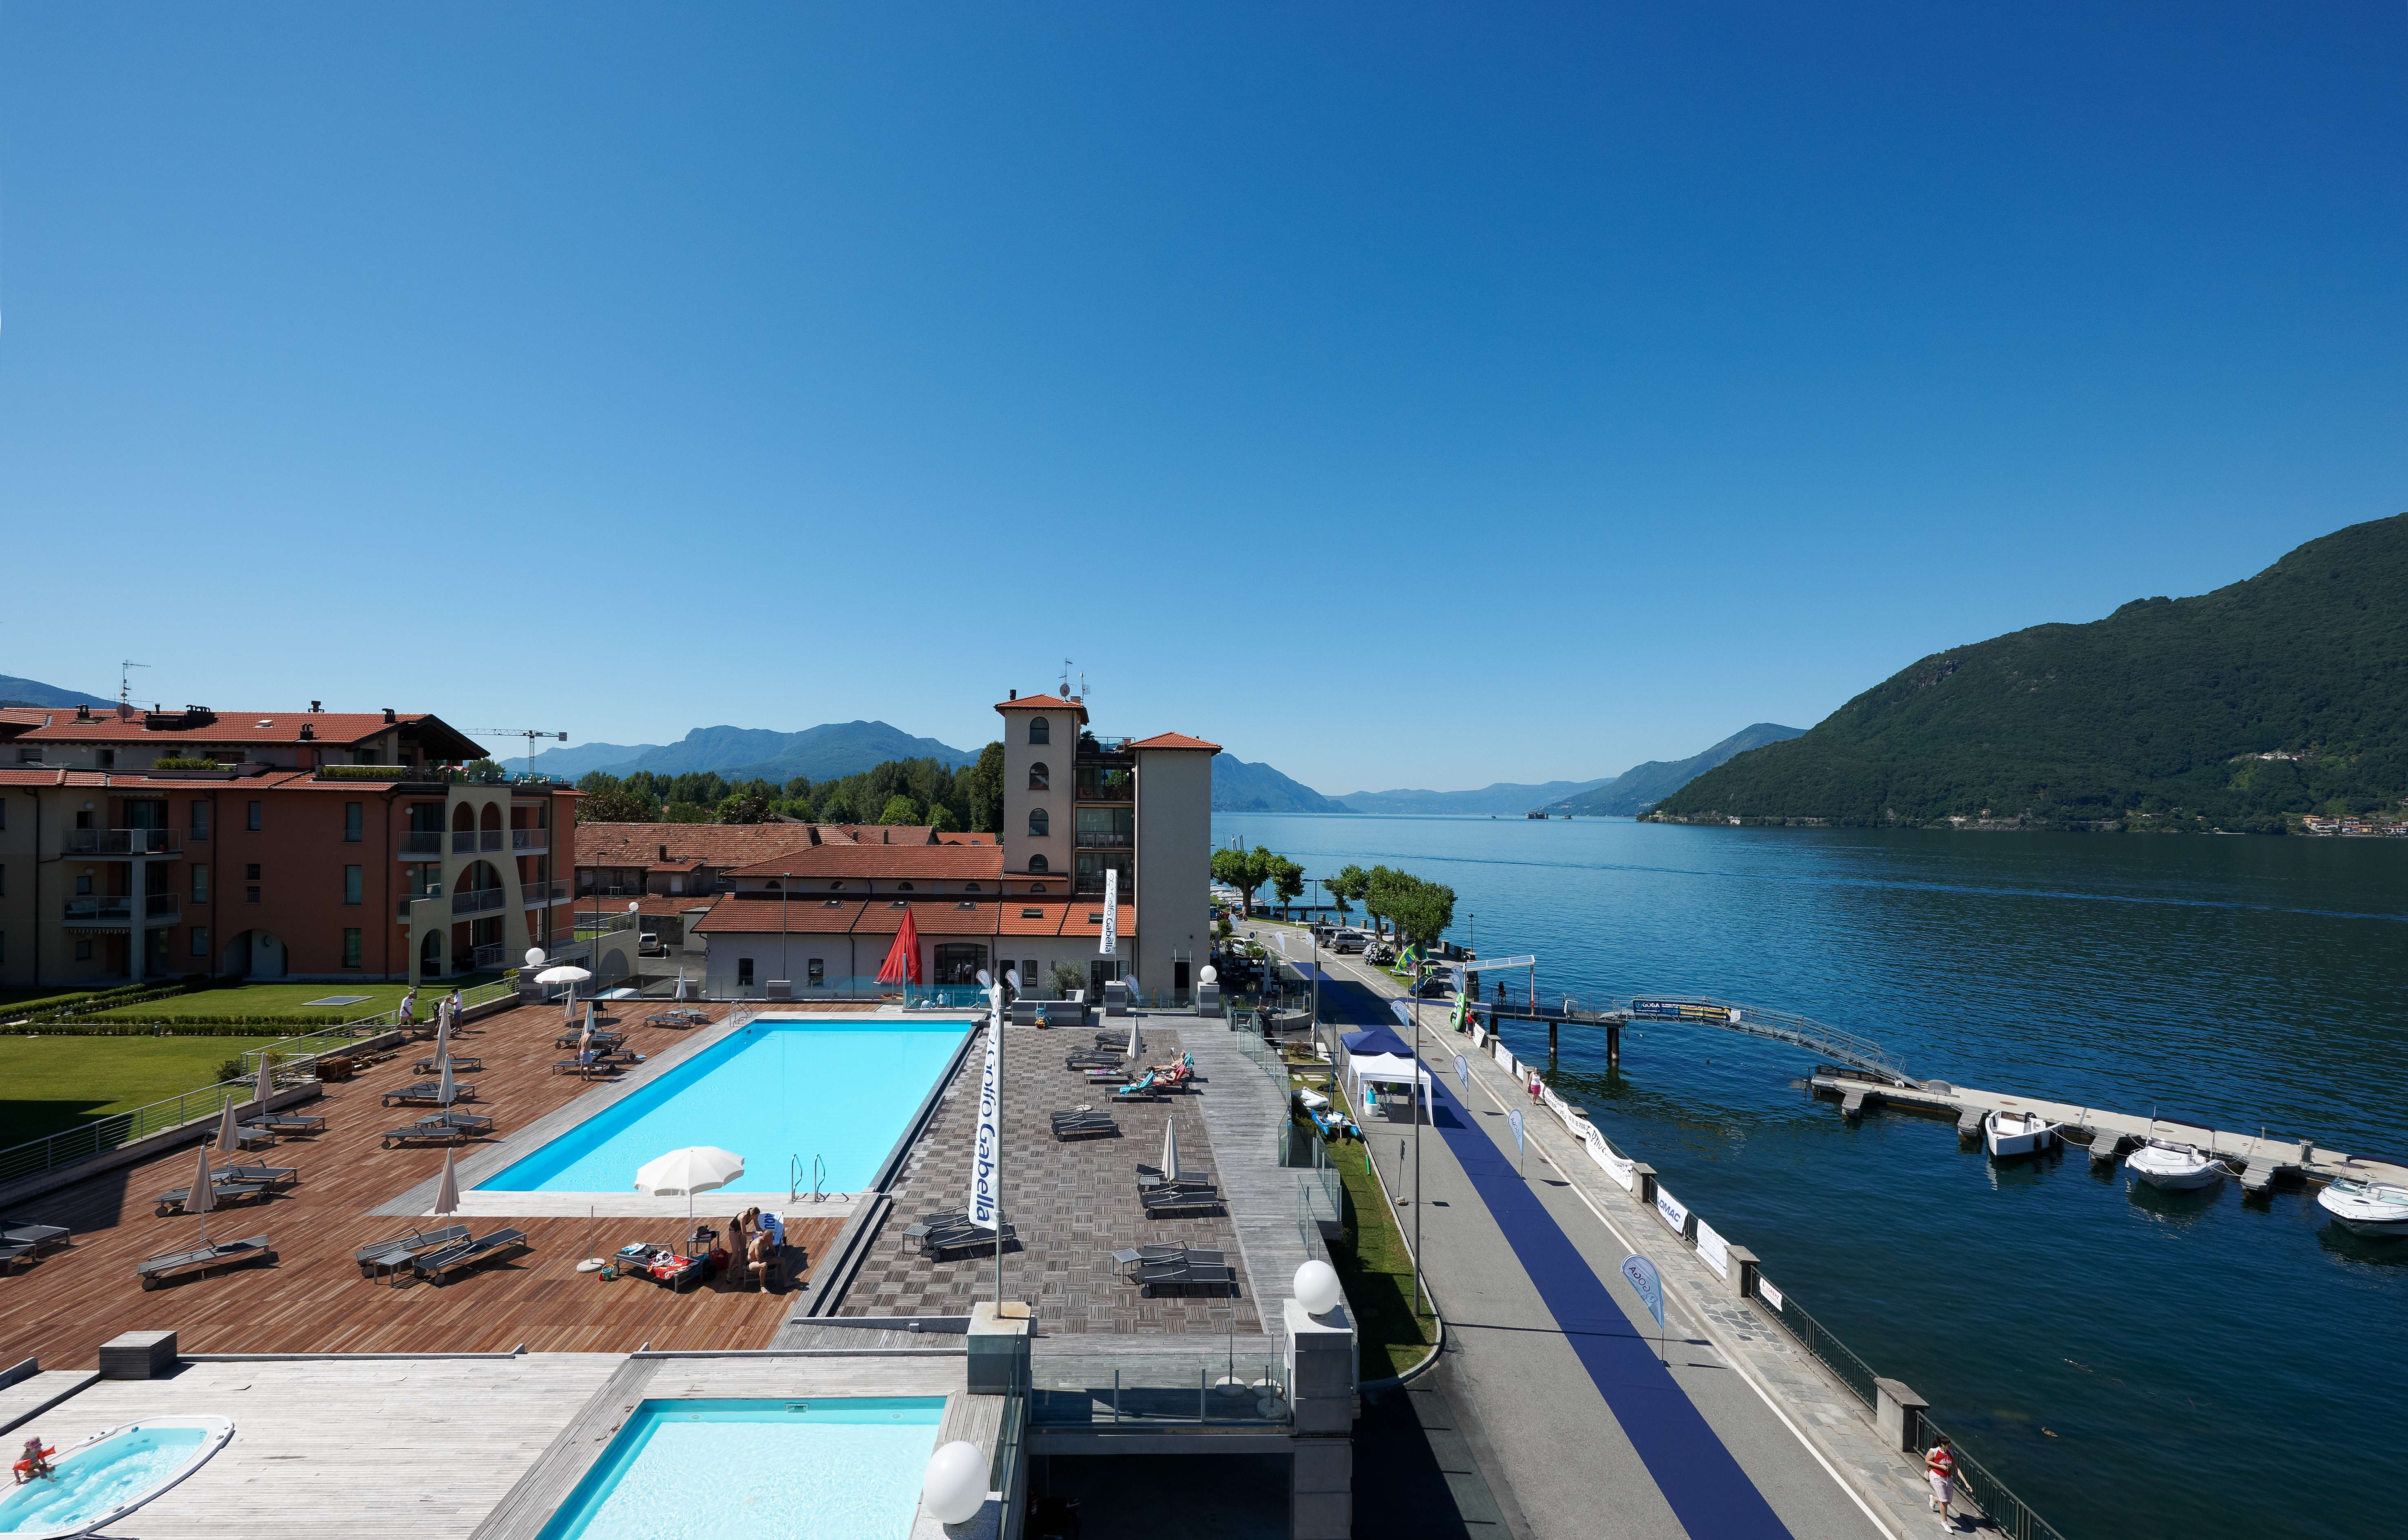 https://www.in-lombardia.it/sites/default/files/accomodation/gallery/105448/32269/swimming_pool_area_2.jpg